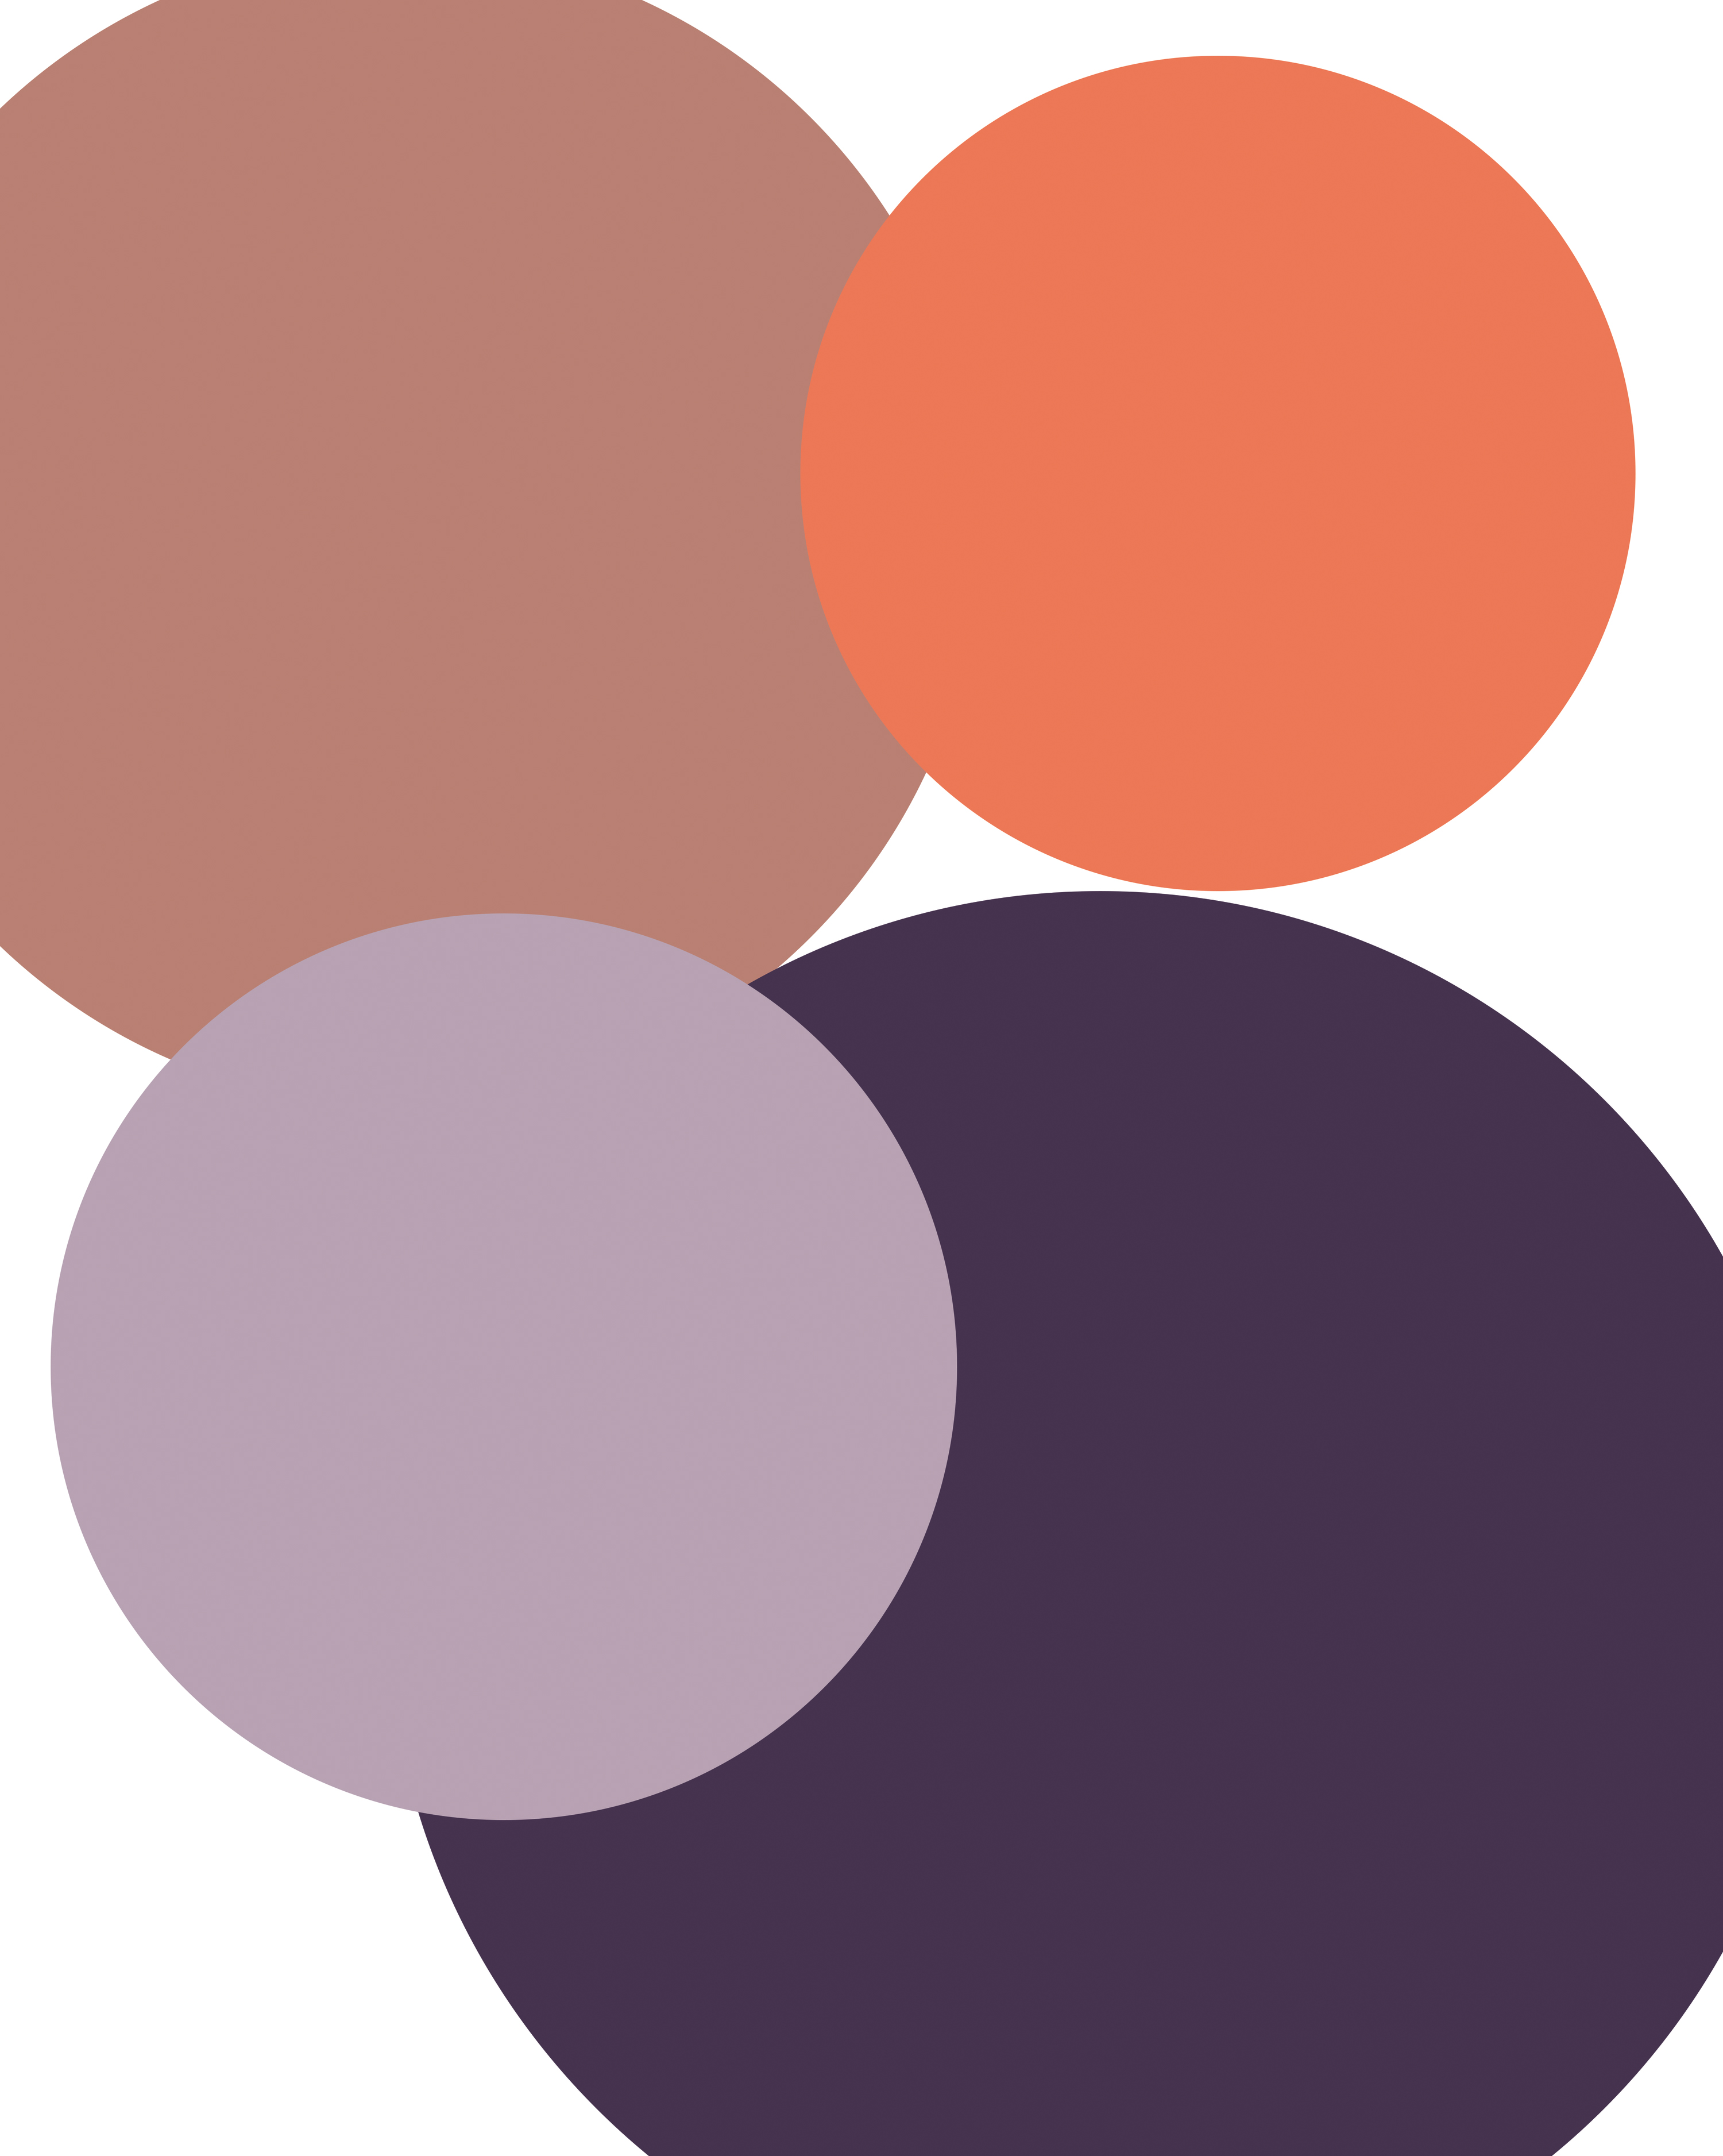 Taupe, Lilac, Deep Plum, and Peach